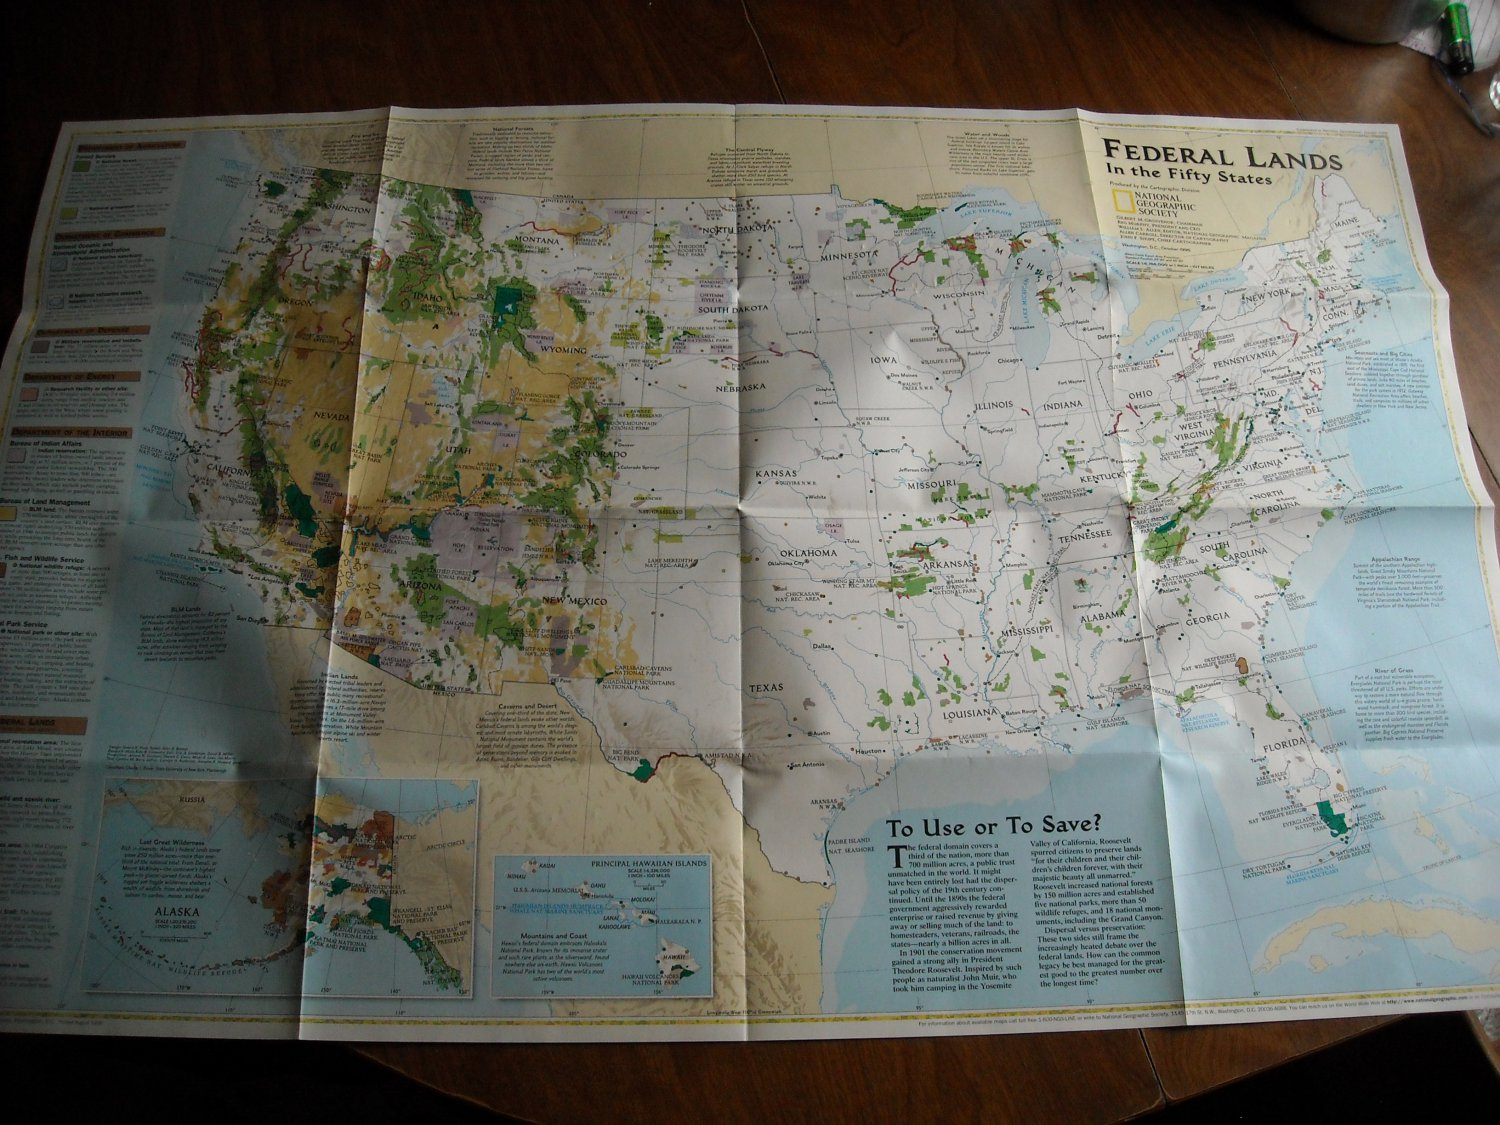 National Geographic Double sided Map The Federal Lands In the Fifty States Physical Landscape (1996)